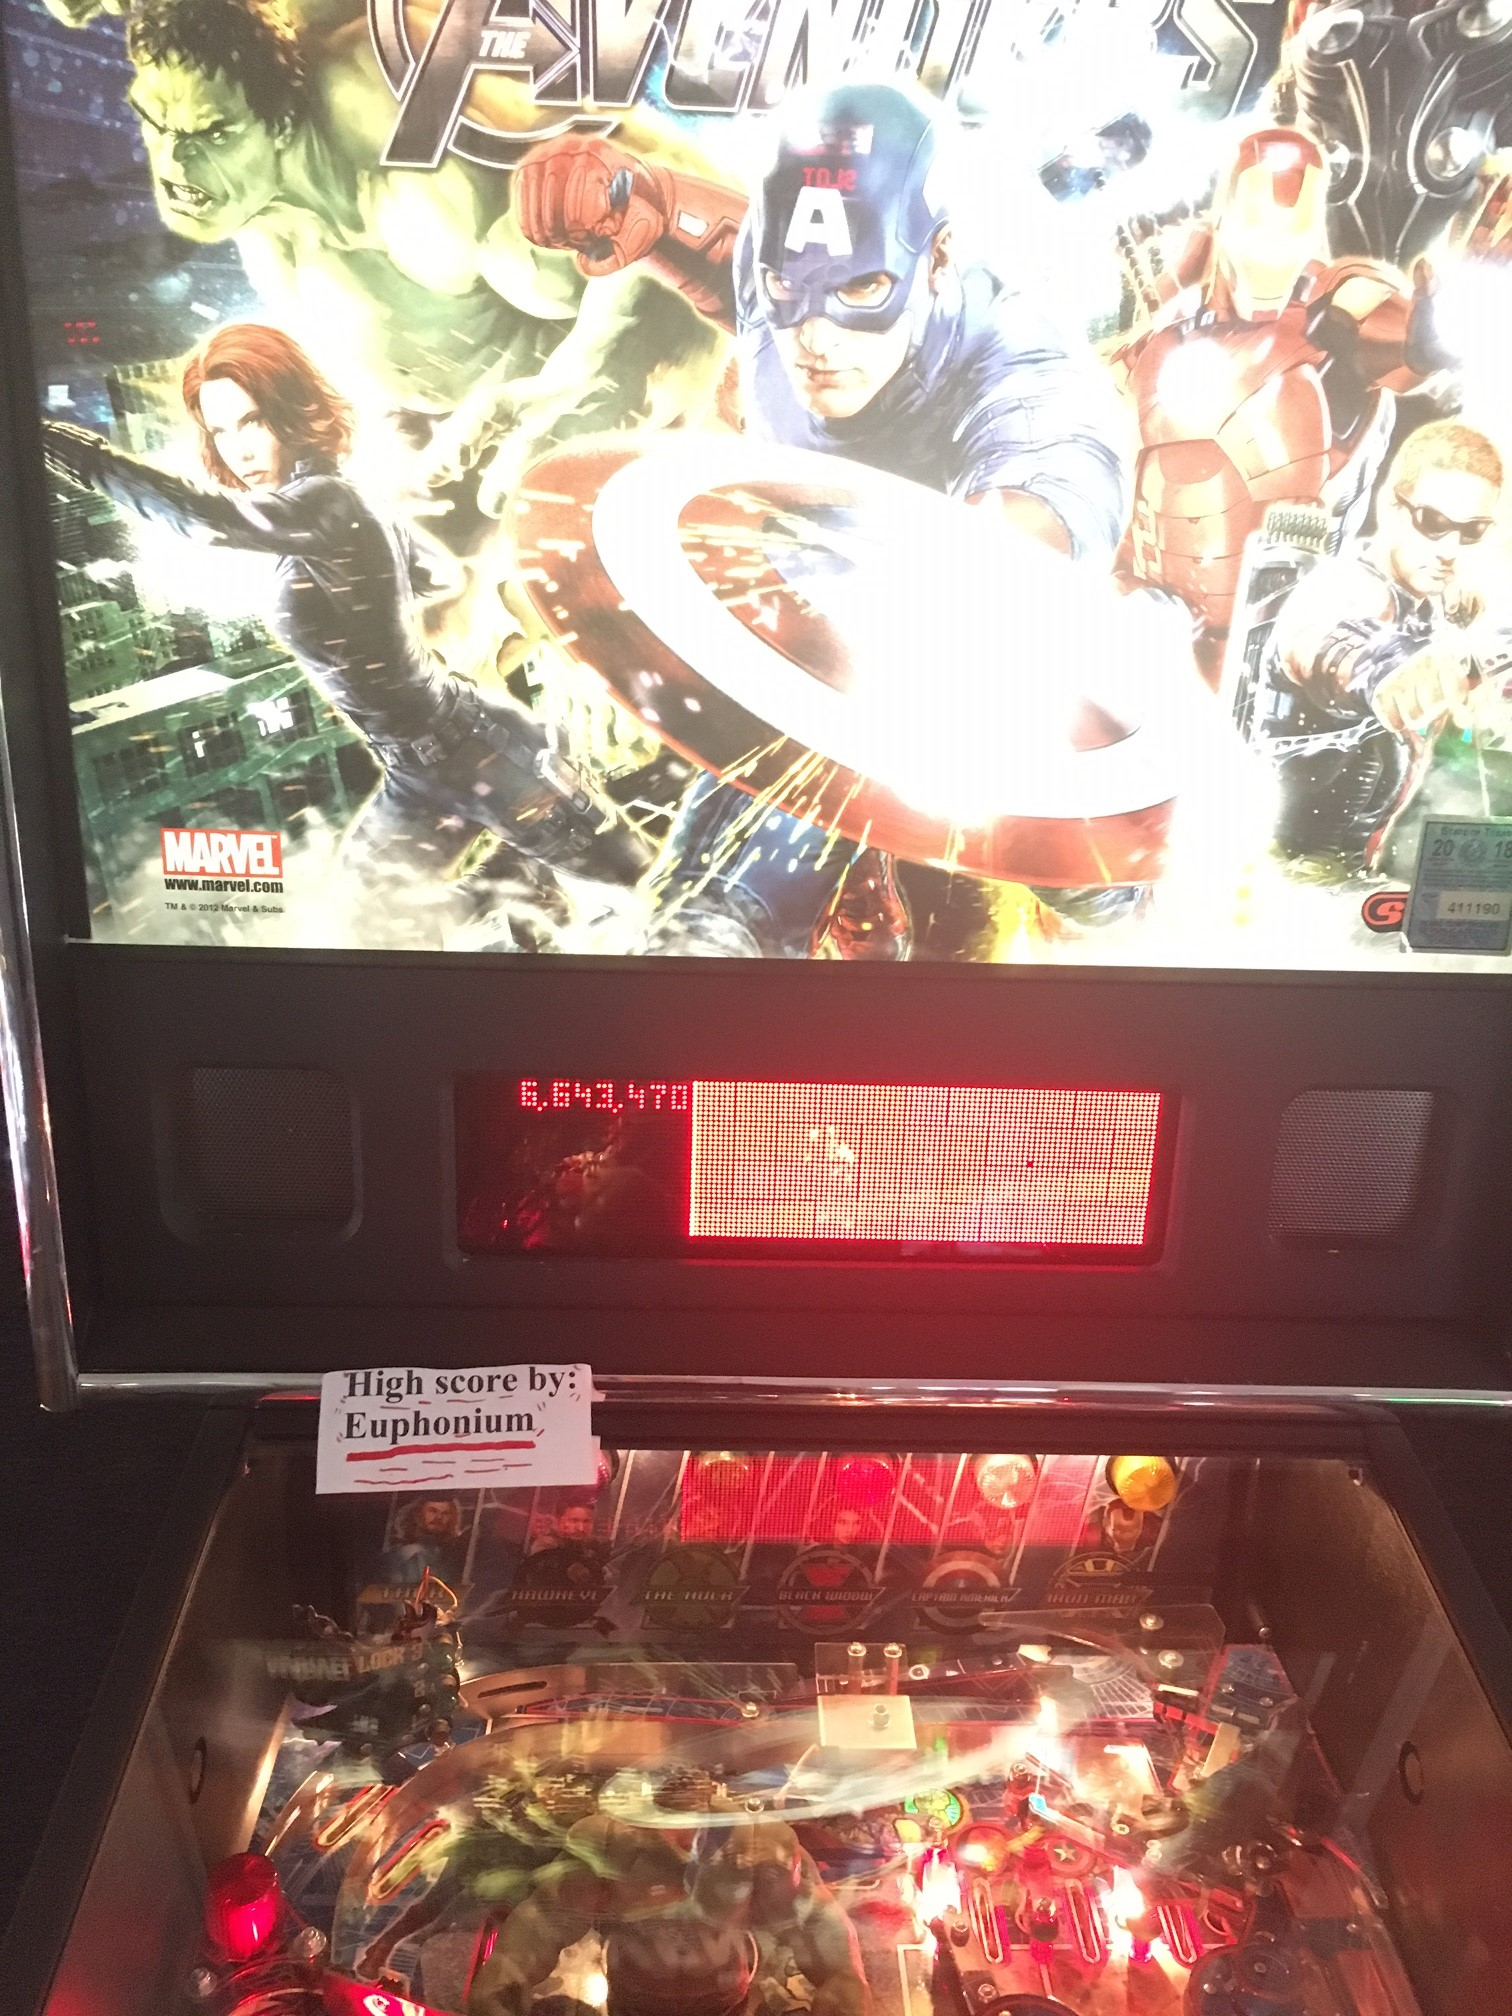 The Avengers [Pro] 6,643,470 points